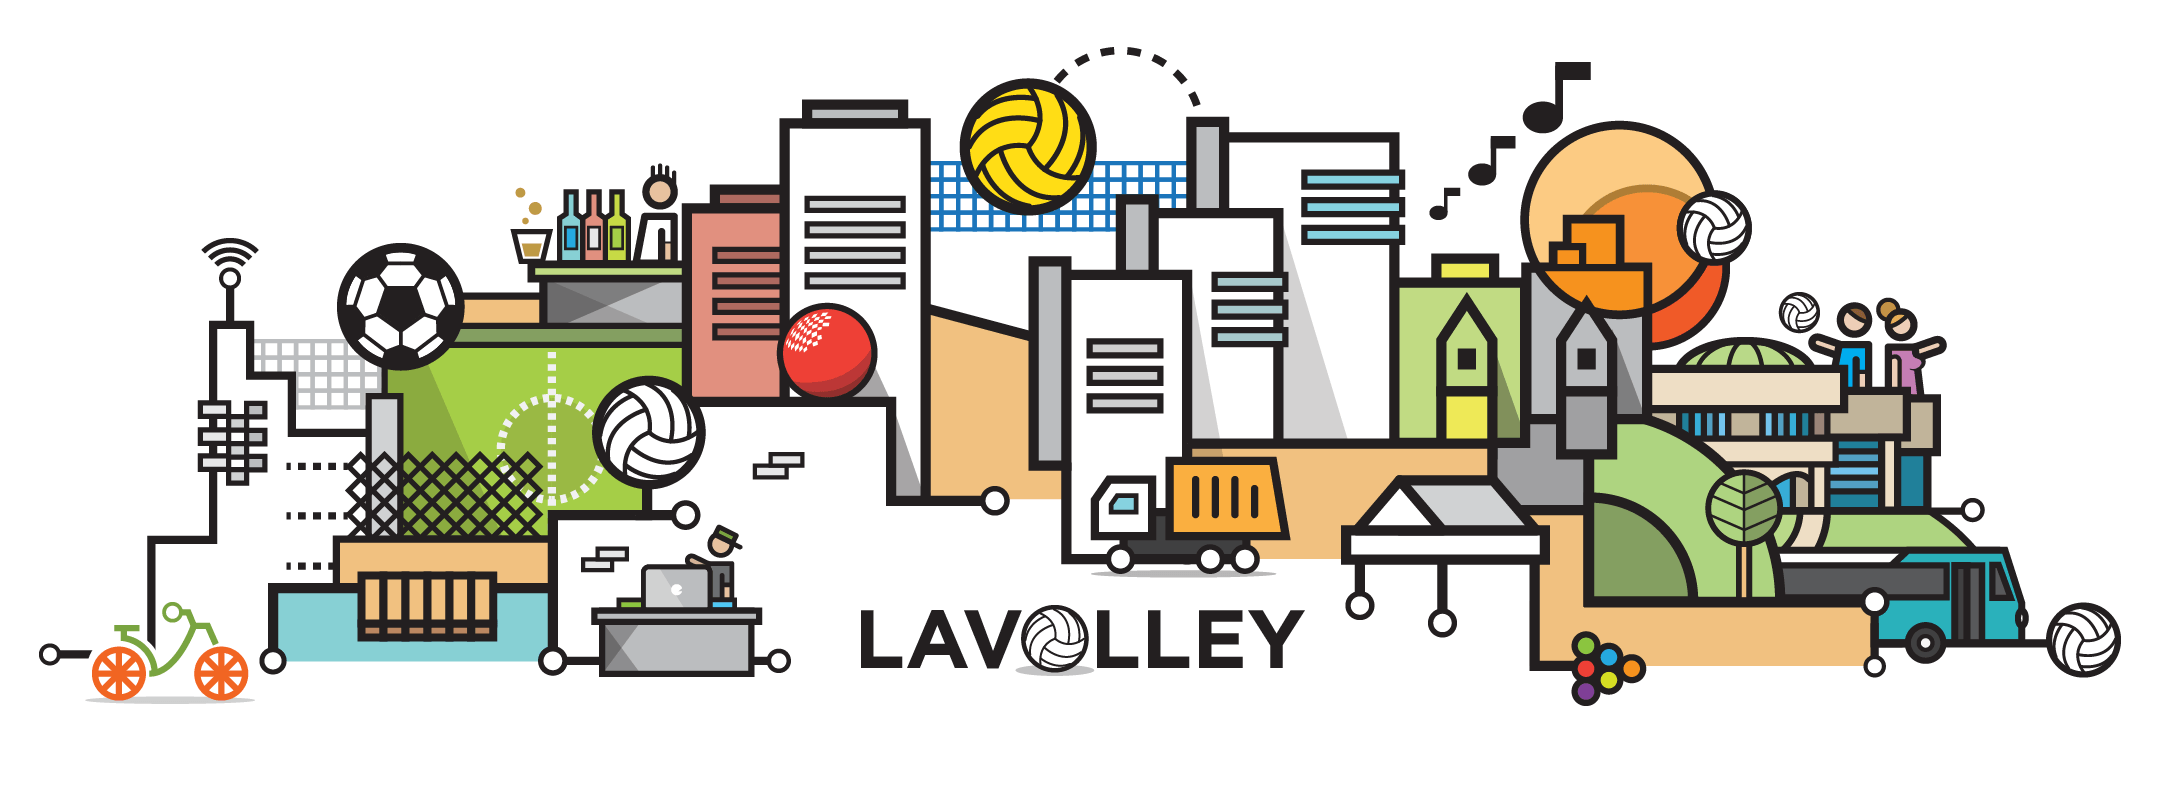 la-volley-cityline-illustration-by-loogart